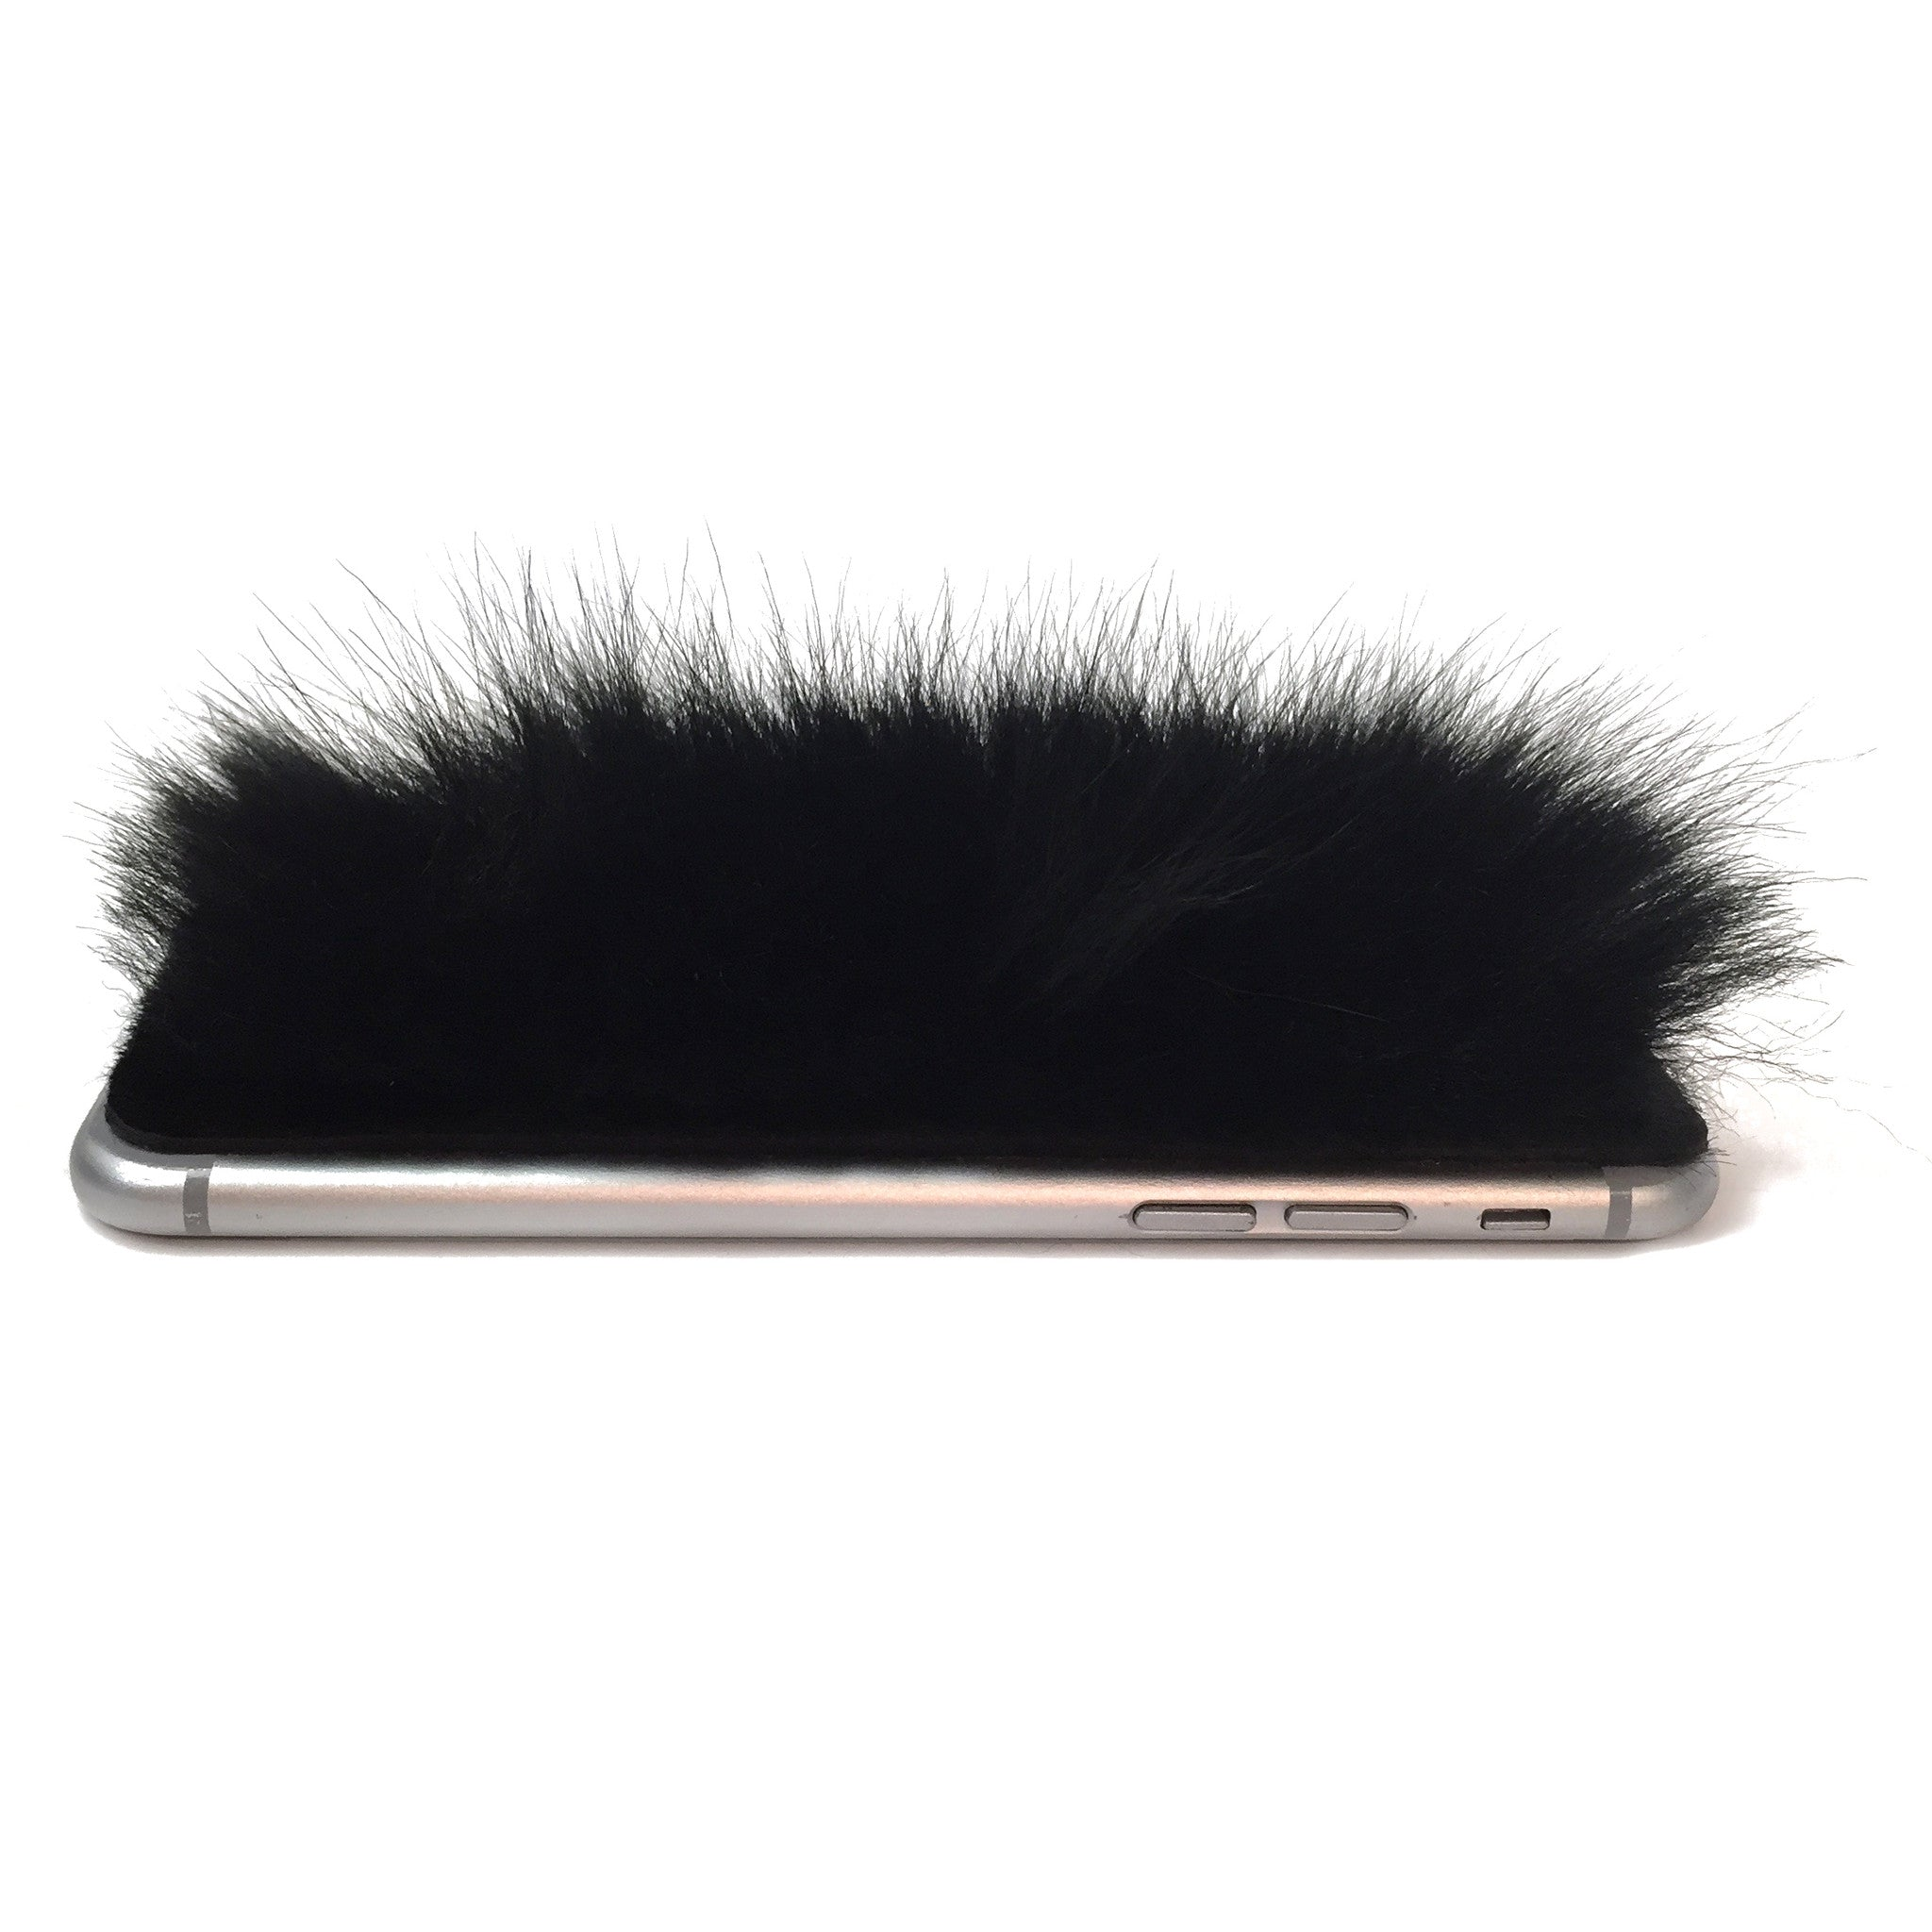 Black Sheep Fur iPhone 7 Leather Skin